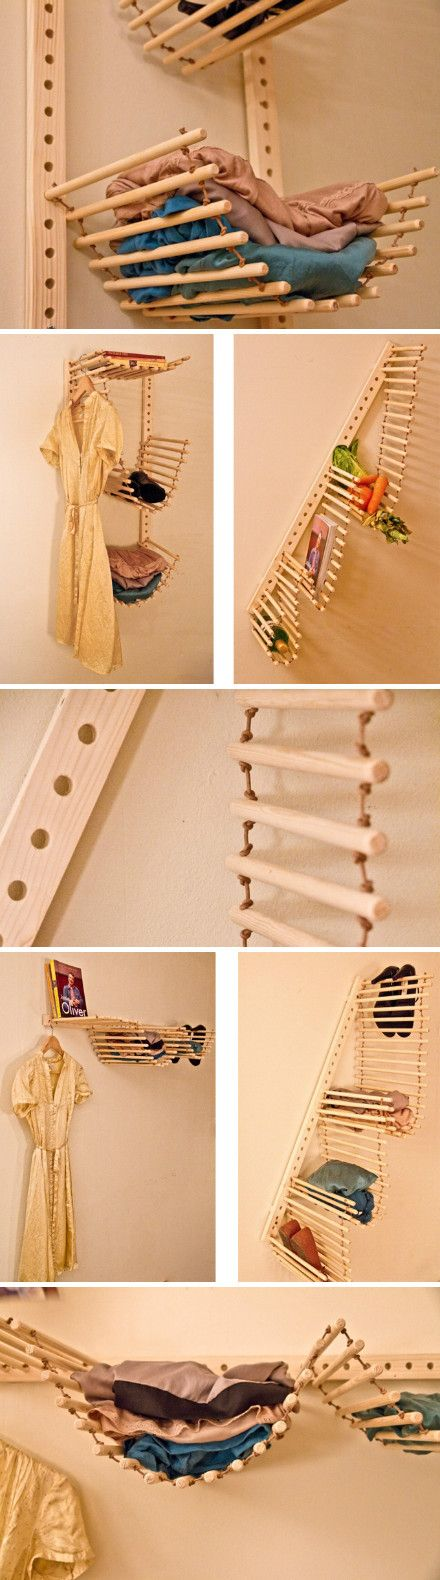 very clever!! real design